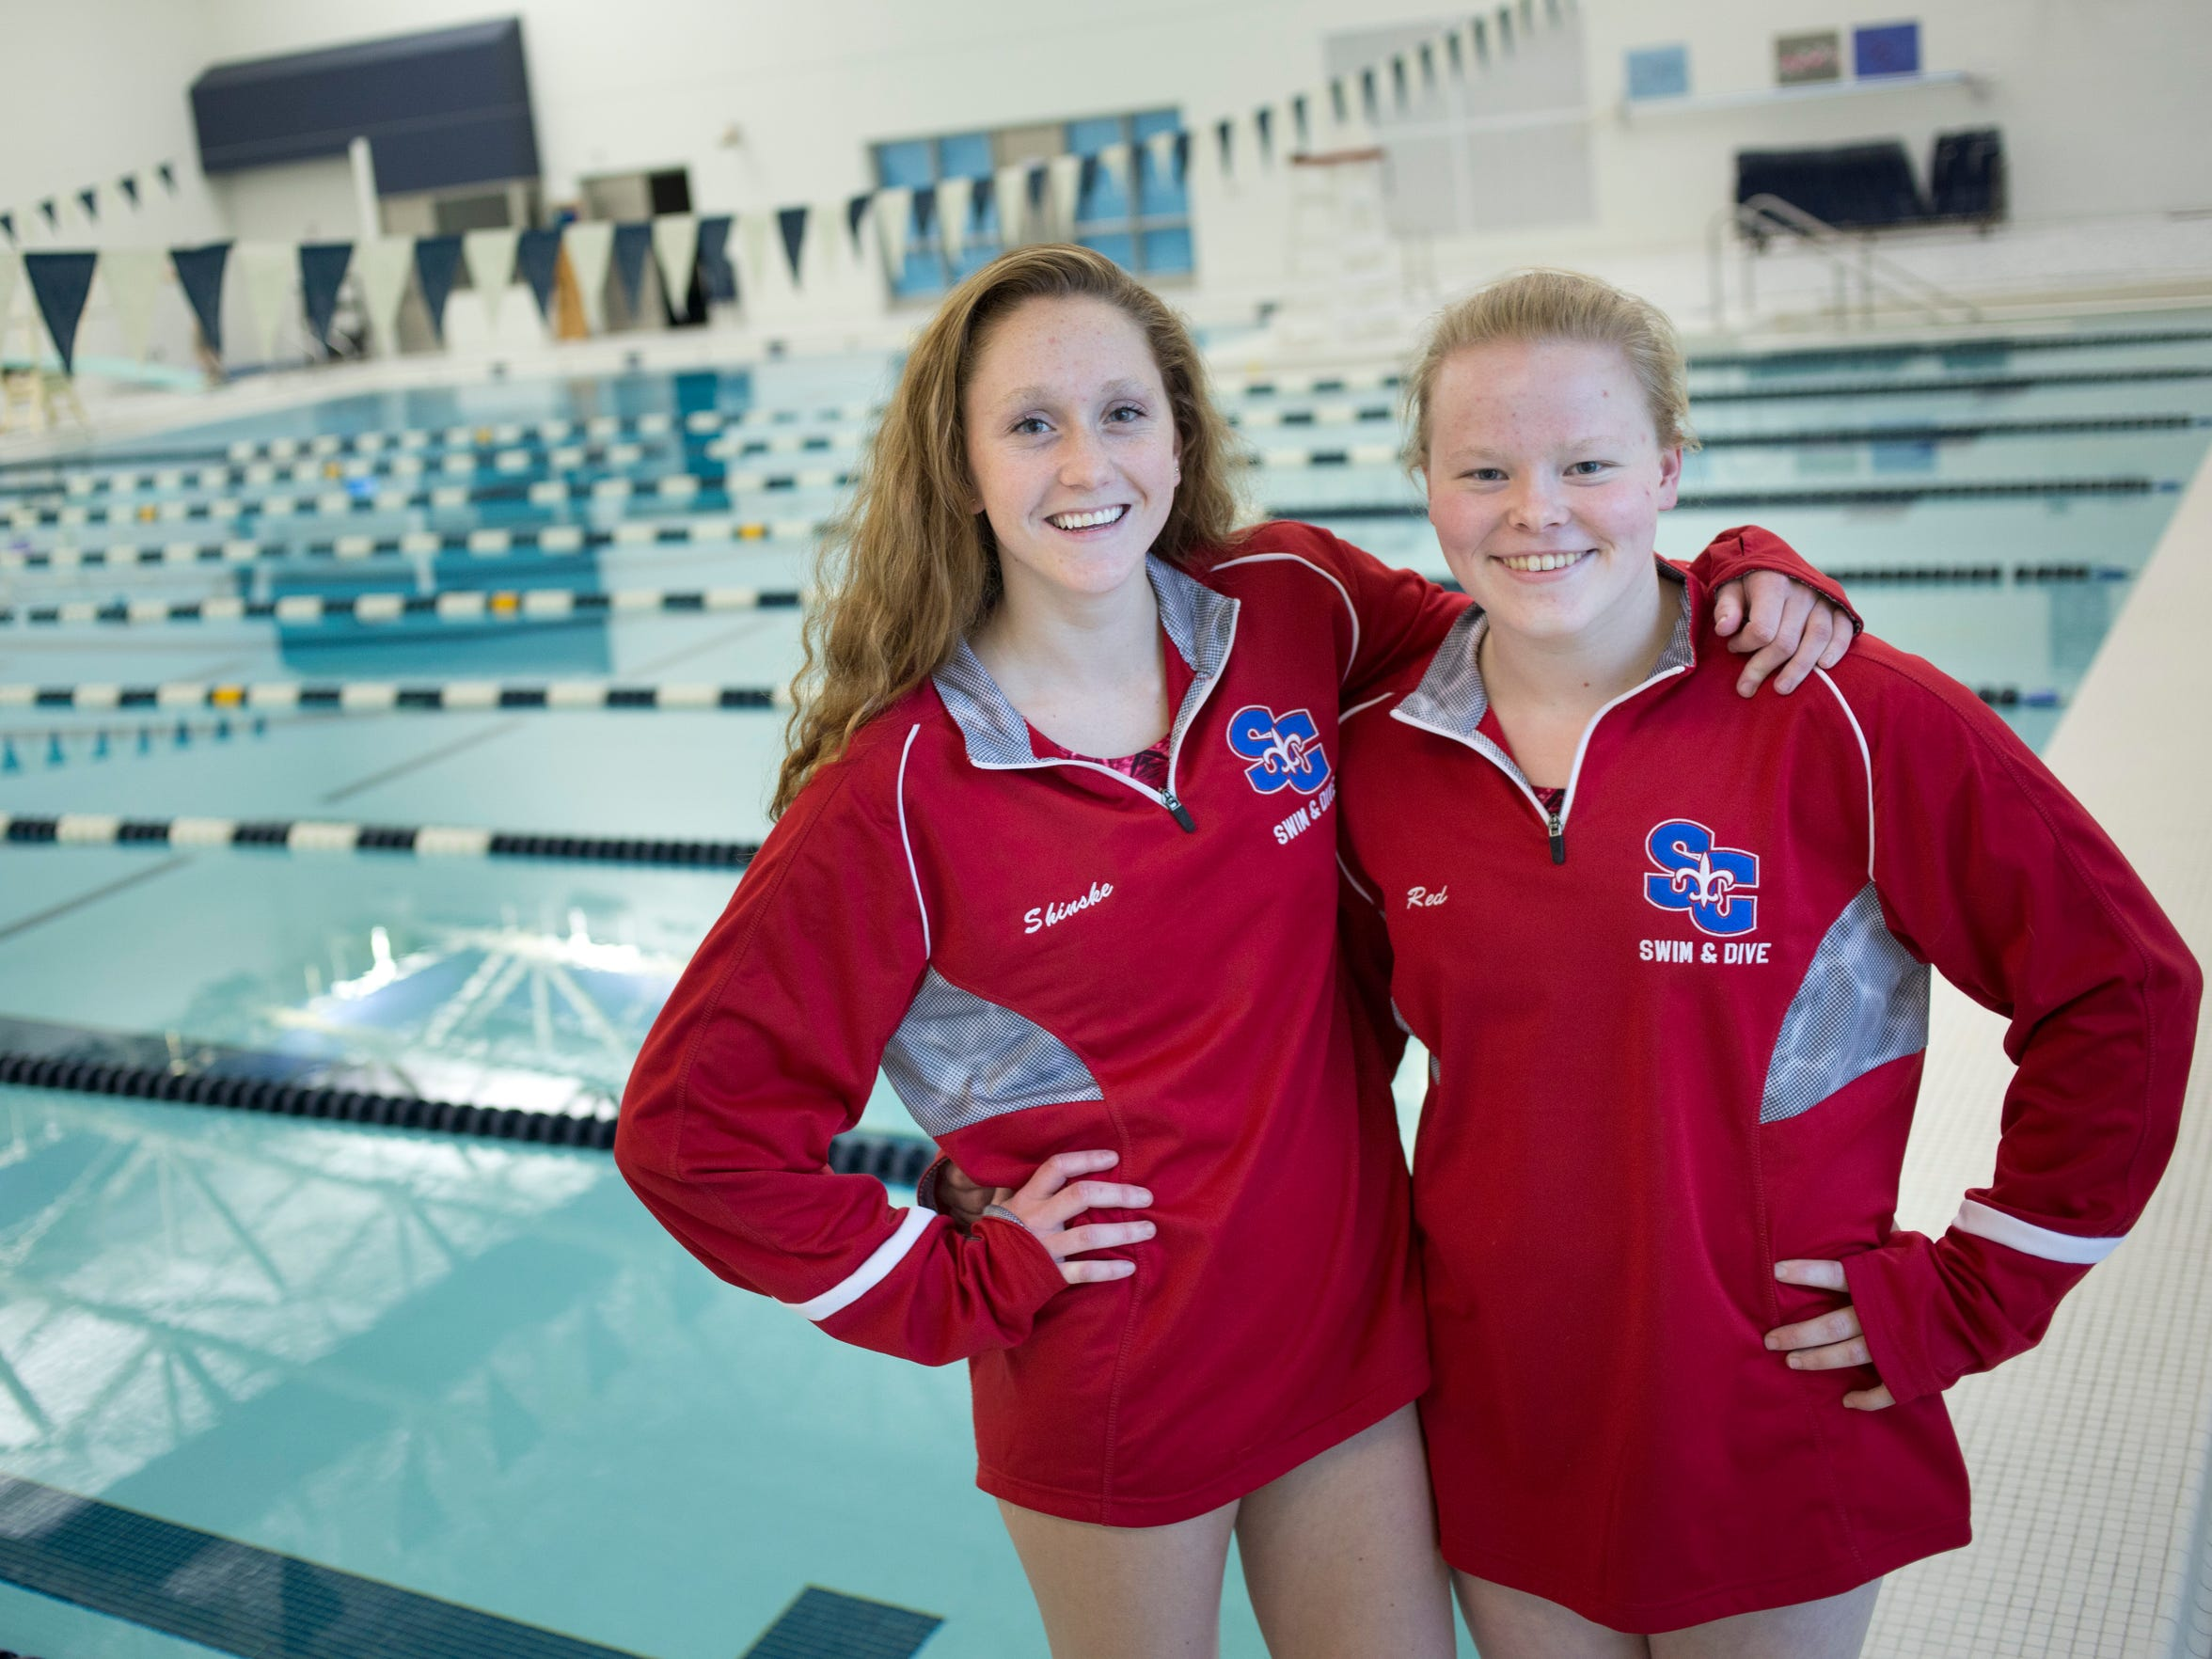 St. Clair senior Grace Shinske and Alexis Smith pose before practice Wednesday, November 18, 2015 in Marysville. The team will be competing in a state meet this weekend.